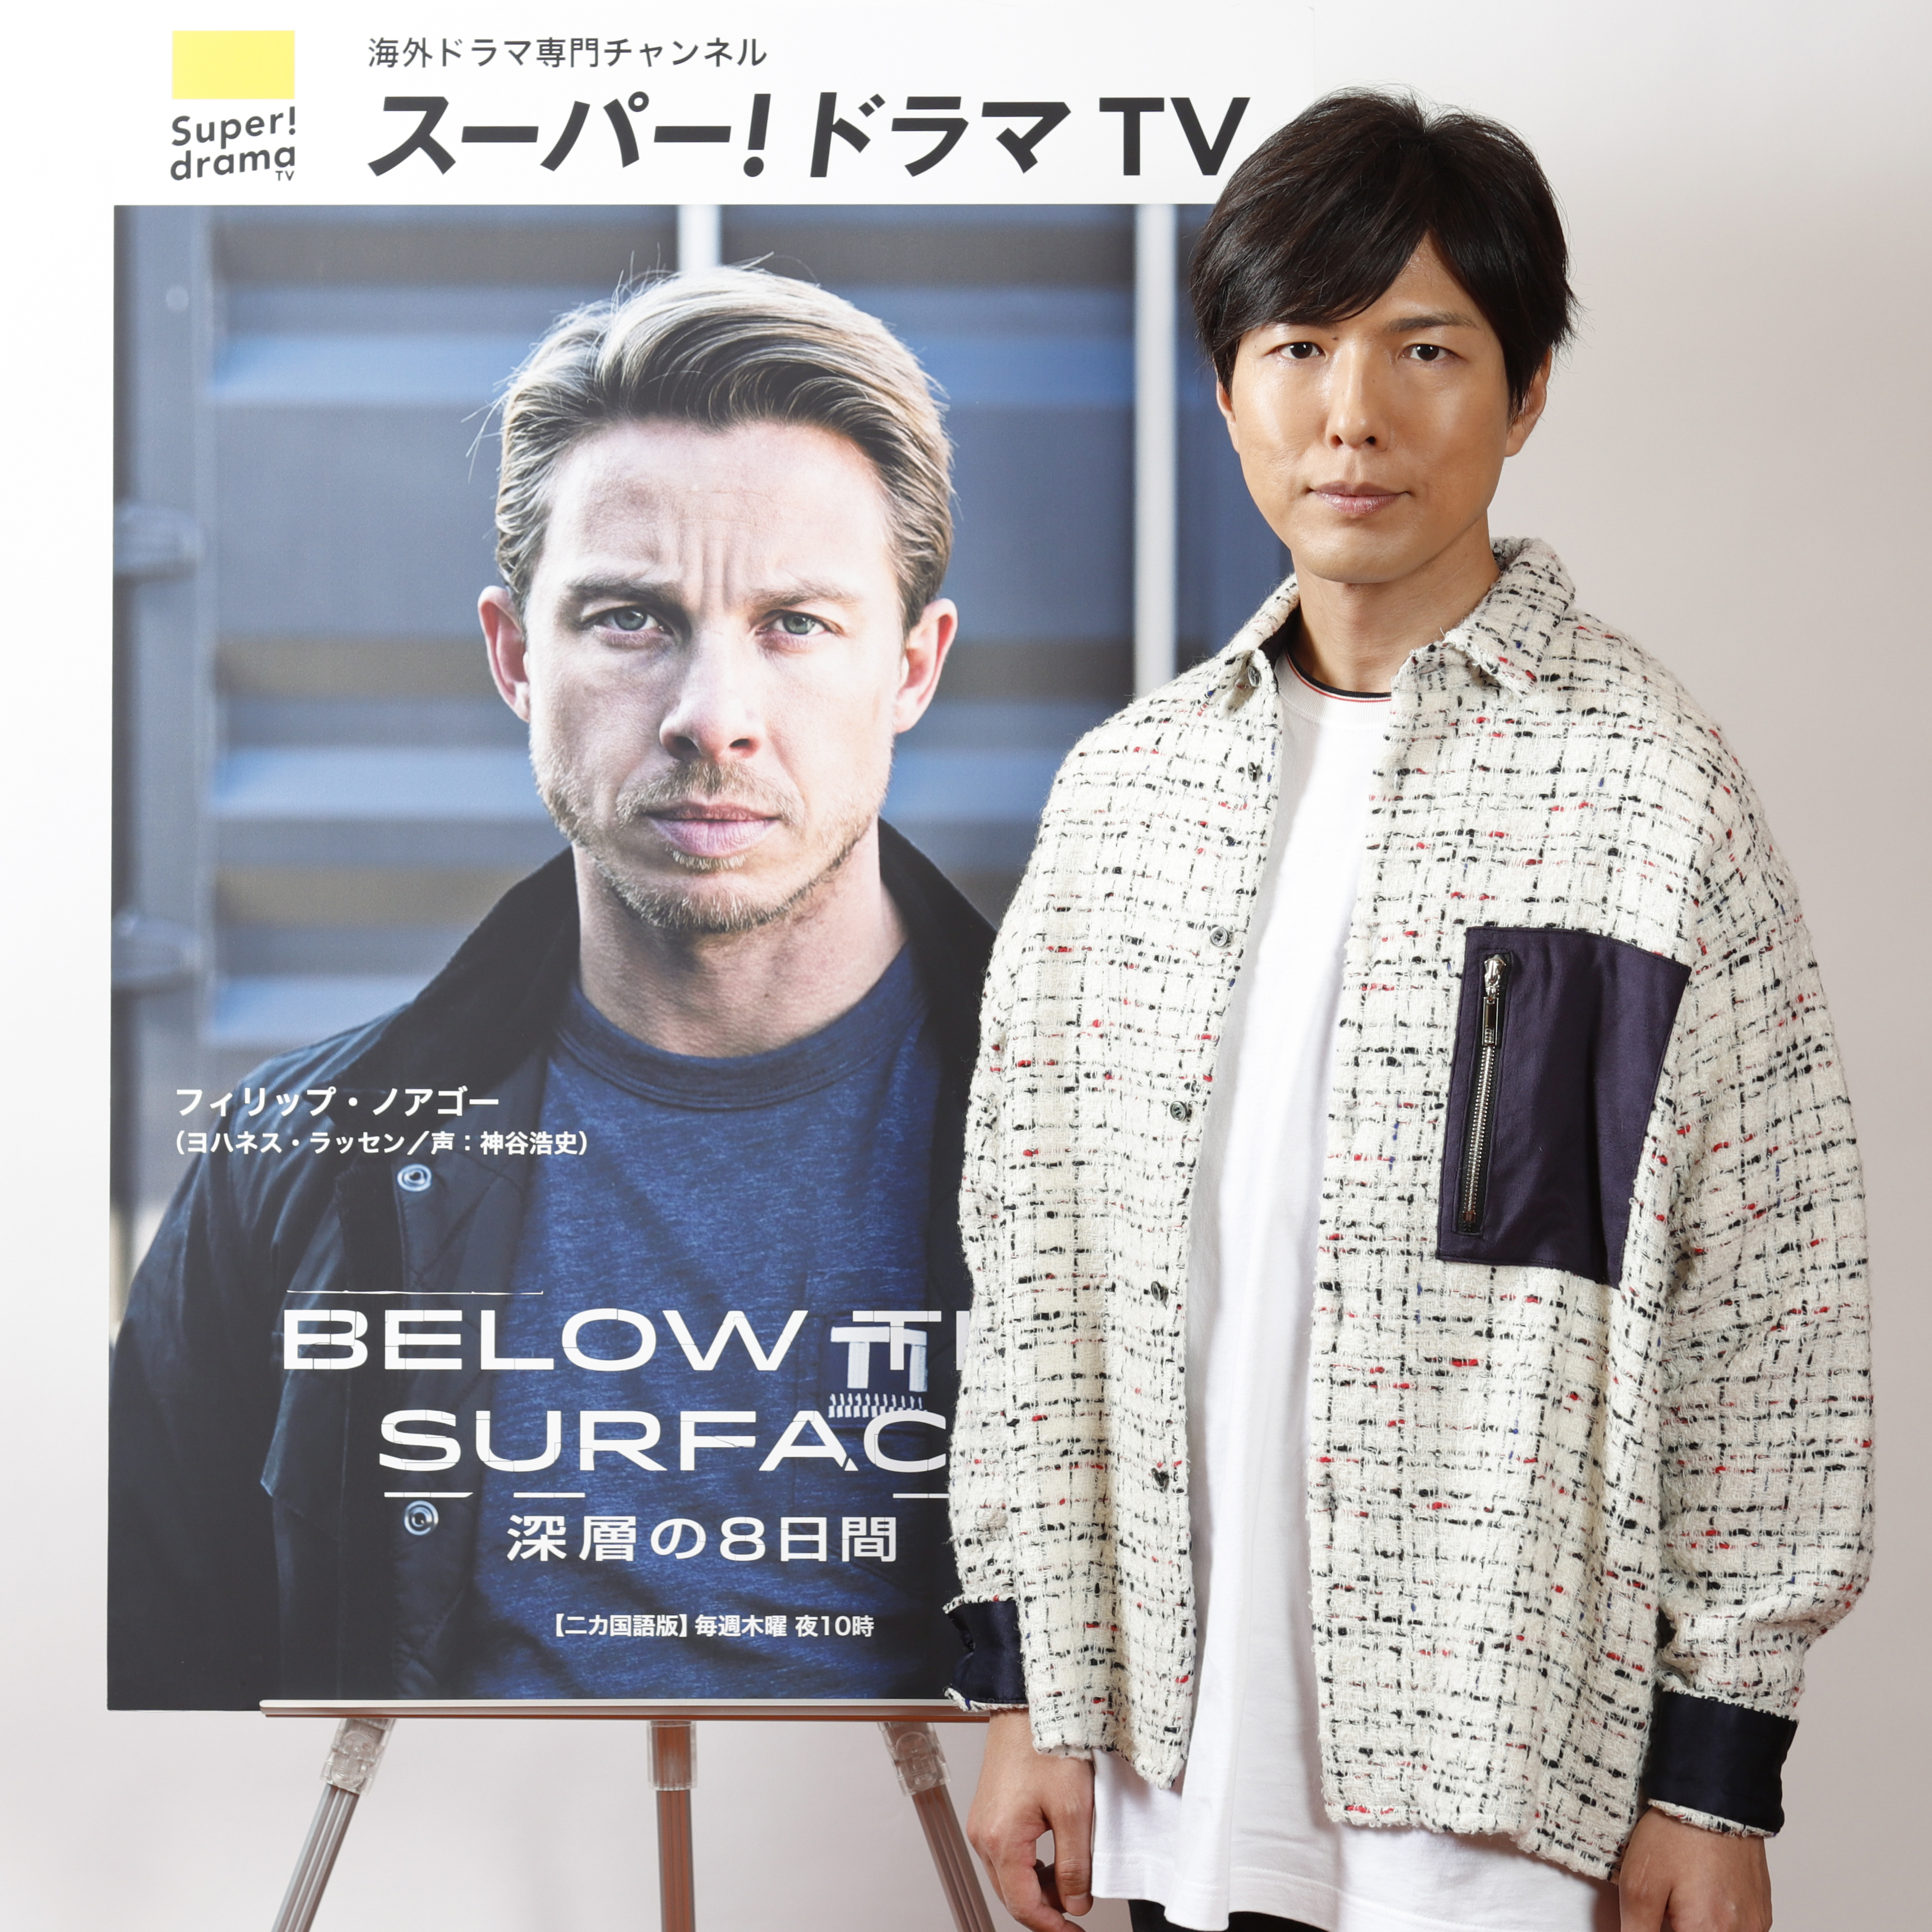 「BELOW THE SURFACE 深層の8日間」主人公役のボイスキャスト、神谷浩史がNHK総合「プロフェッショナル仕事の流儀」に出演決定!